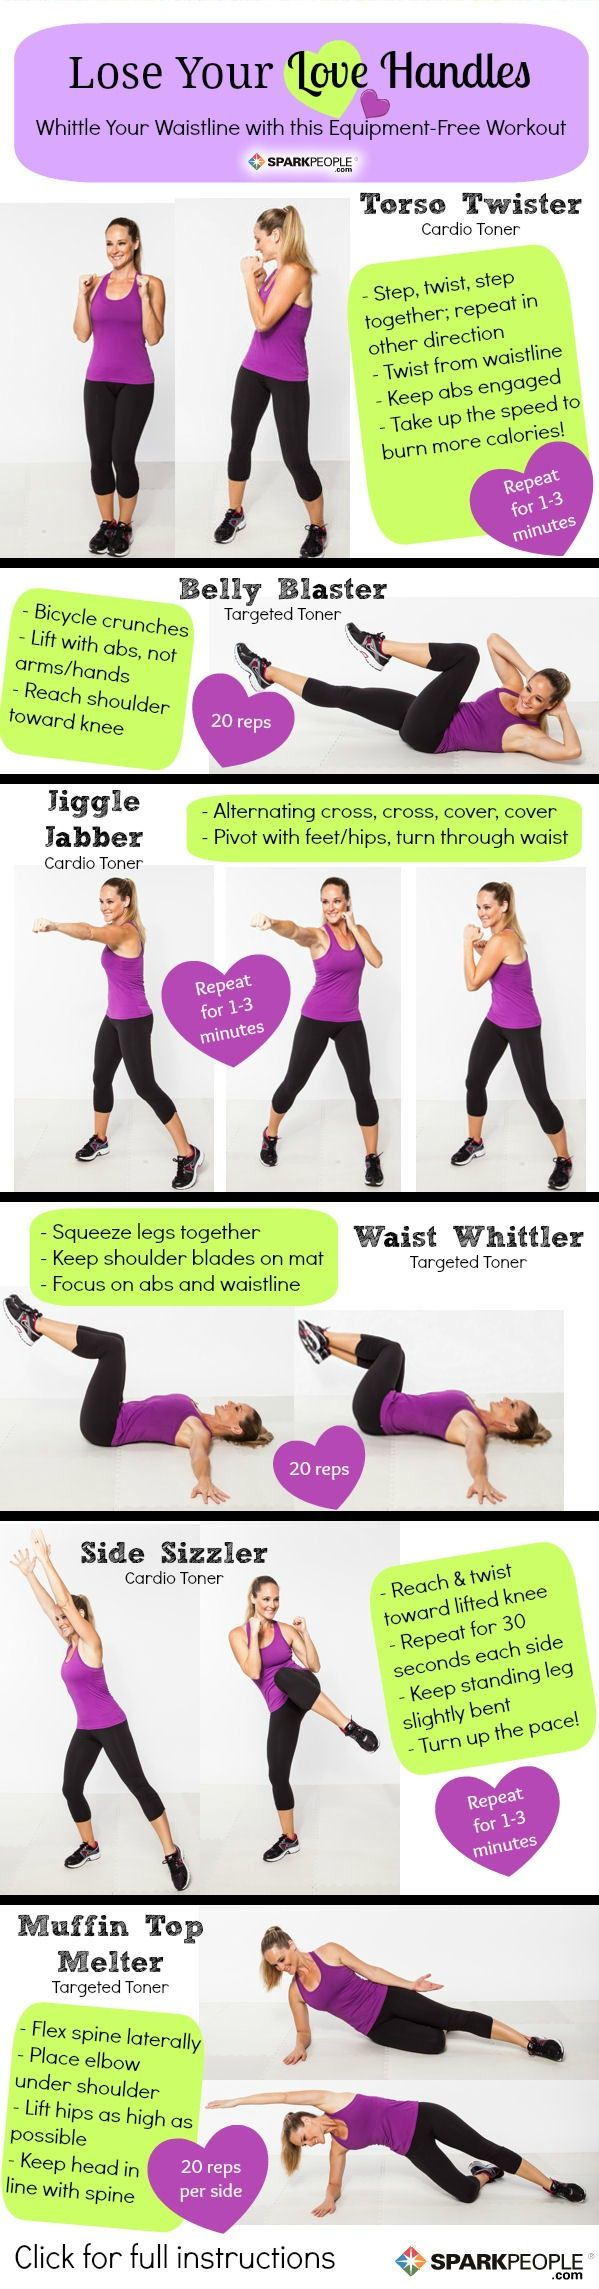 The 'Lose Your Love Handles' Workout @Elena Kovyrzina Navarro Kjellson Moreno